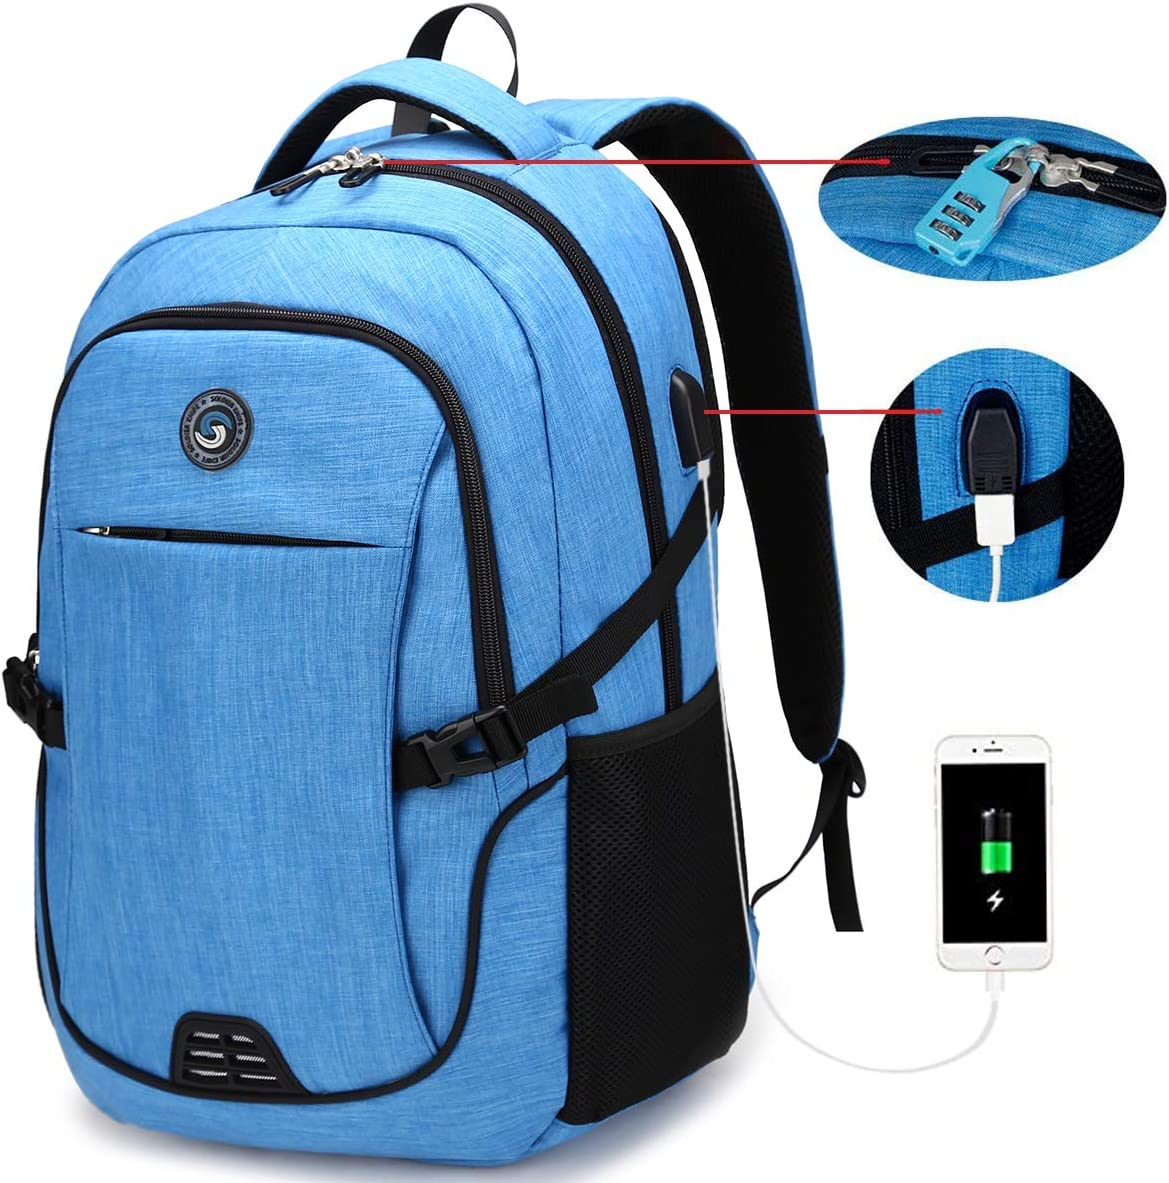 SOLDIERKNIFE Durable Waterproof Anti Theft Laptop Backpack Travel Backpacks Bookbag with usb Charging Port for Women & Men School College Students Backpack Fits 15.6 Inch Laptop Sky Blue